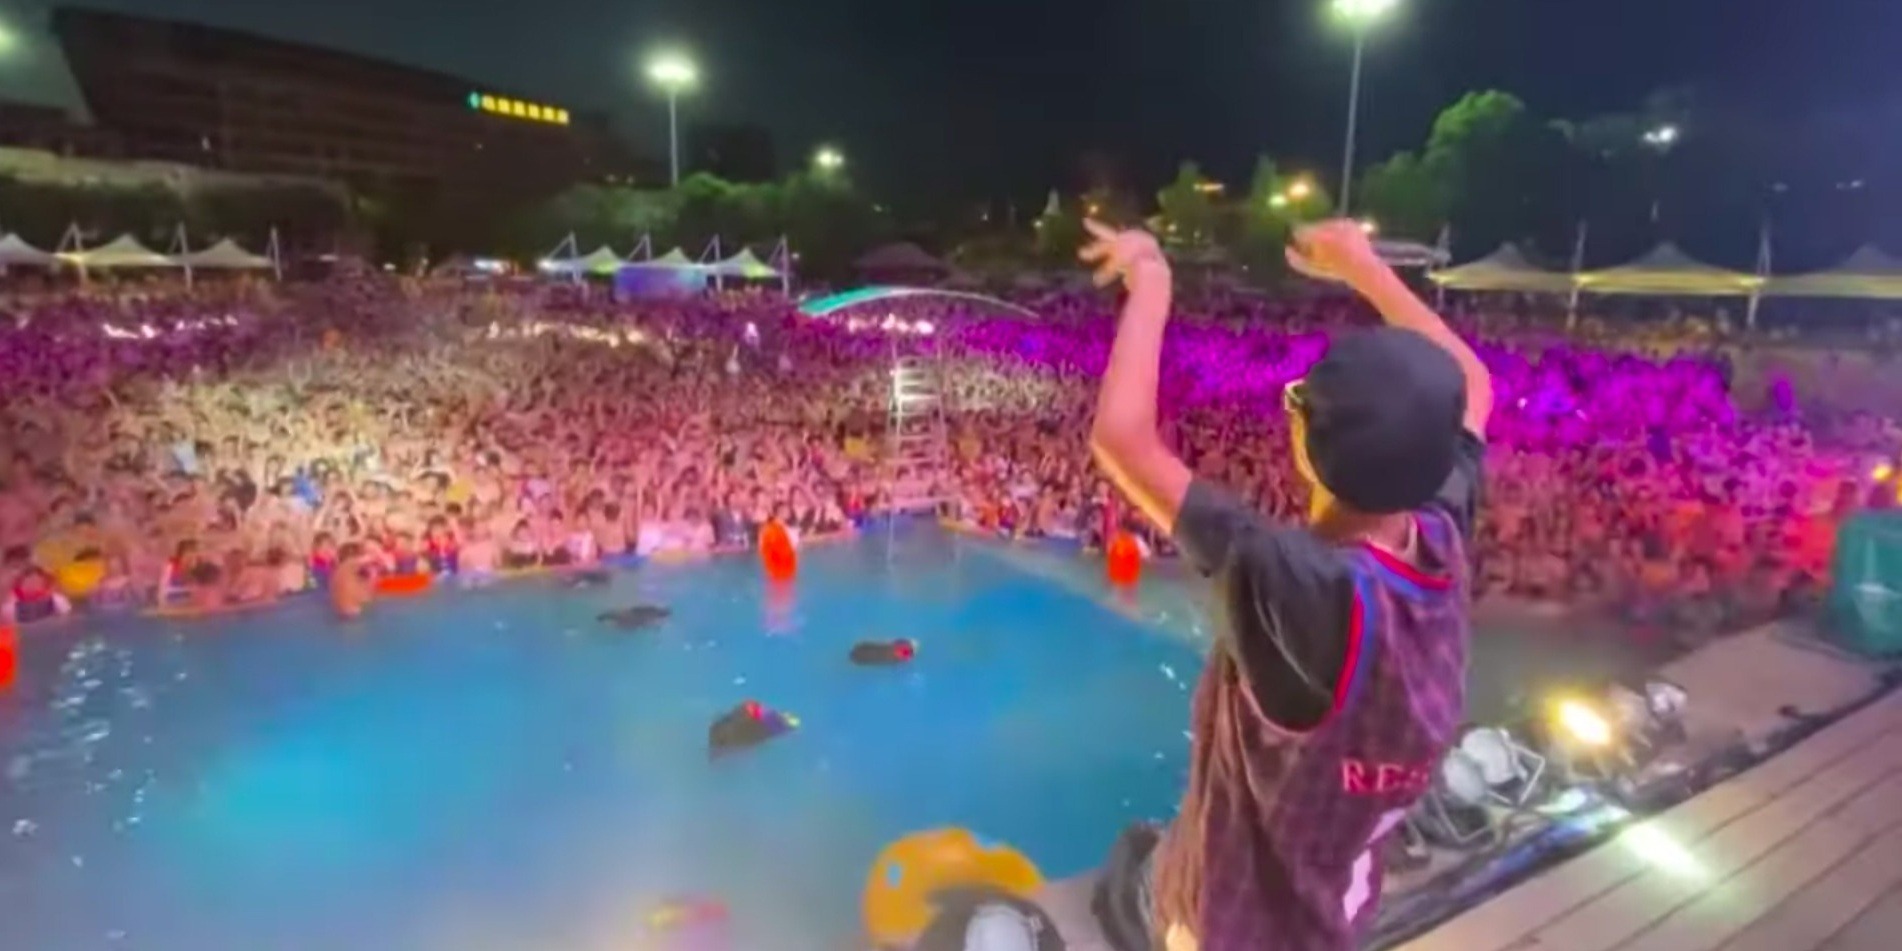 Partygoers flock to Wuhan water park for electronic music festival – watch